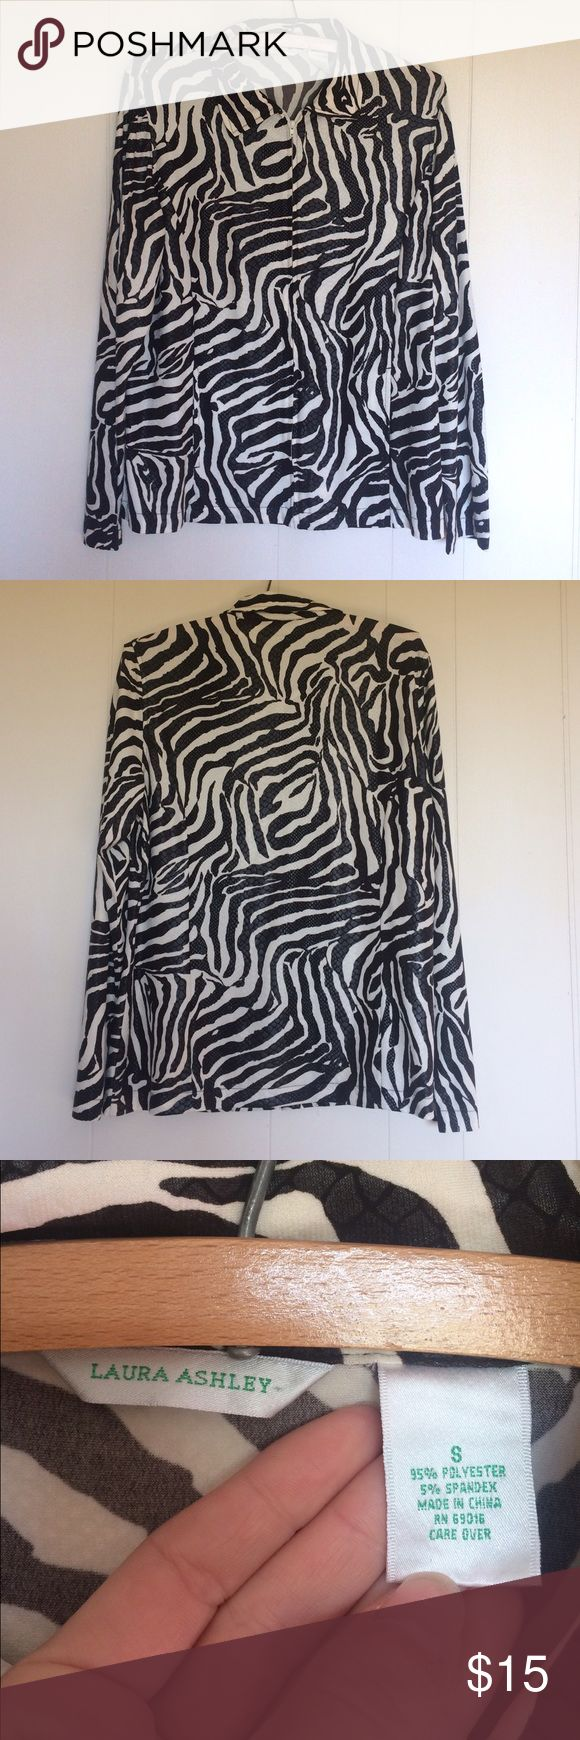 Laura Ashley Lightweight Zip Up Jacket Beautiful animal print lightweight zip up jacket. 95% polyester & 5% spandex. Preloved. Size Small. If you have any questions please ask before buying. :) *Colors may vary slightly from pictures* Laura Ashley Jackets & Coats